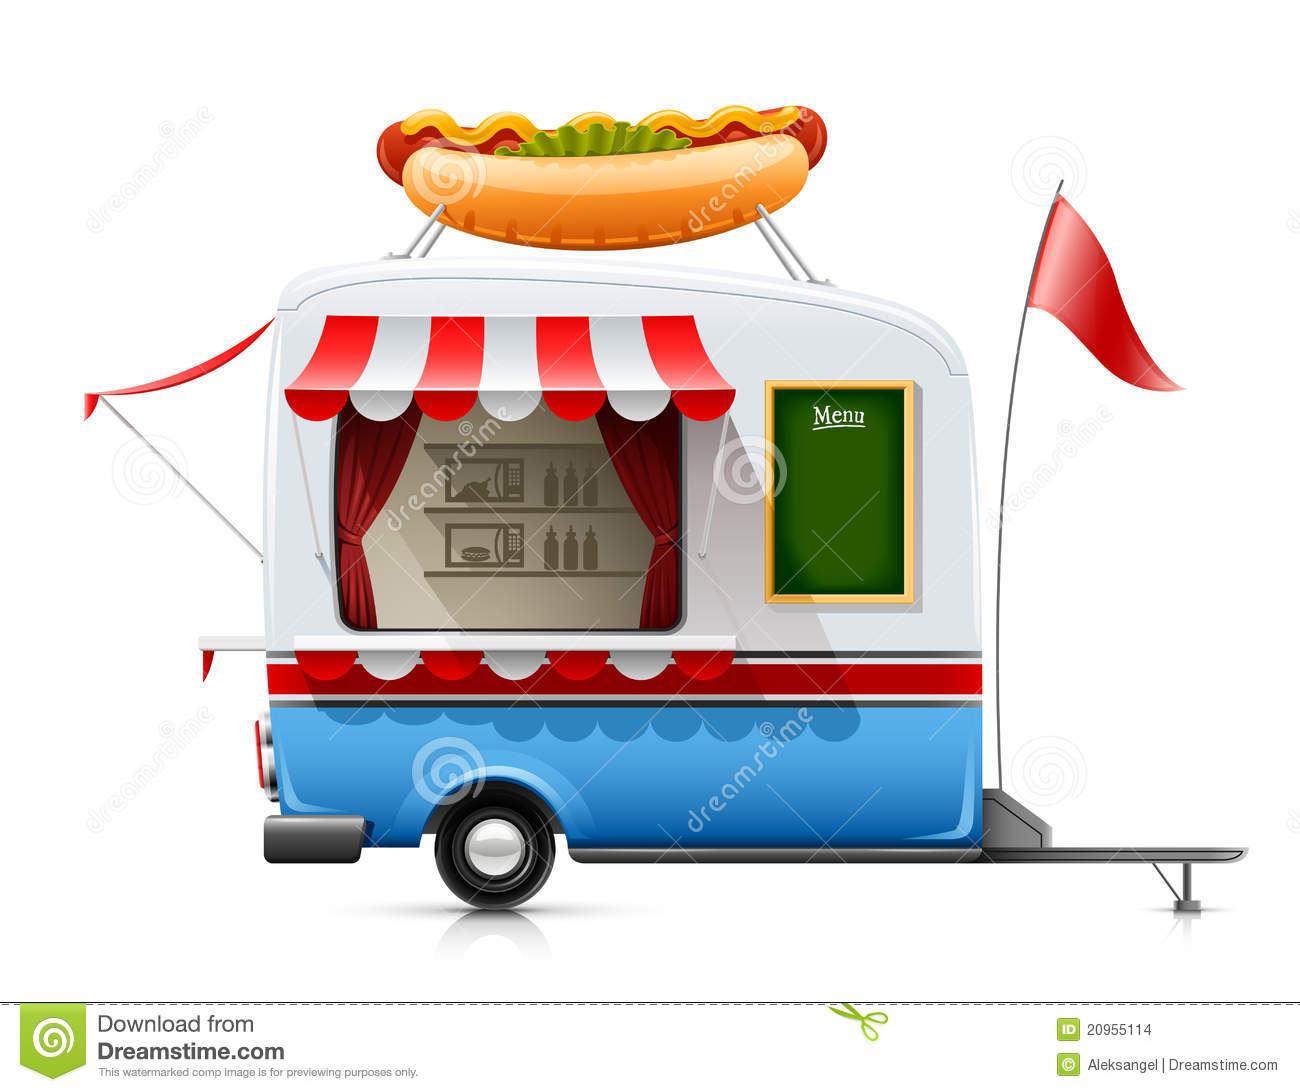 A Sample Hot Dog Cart Business Plan Template